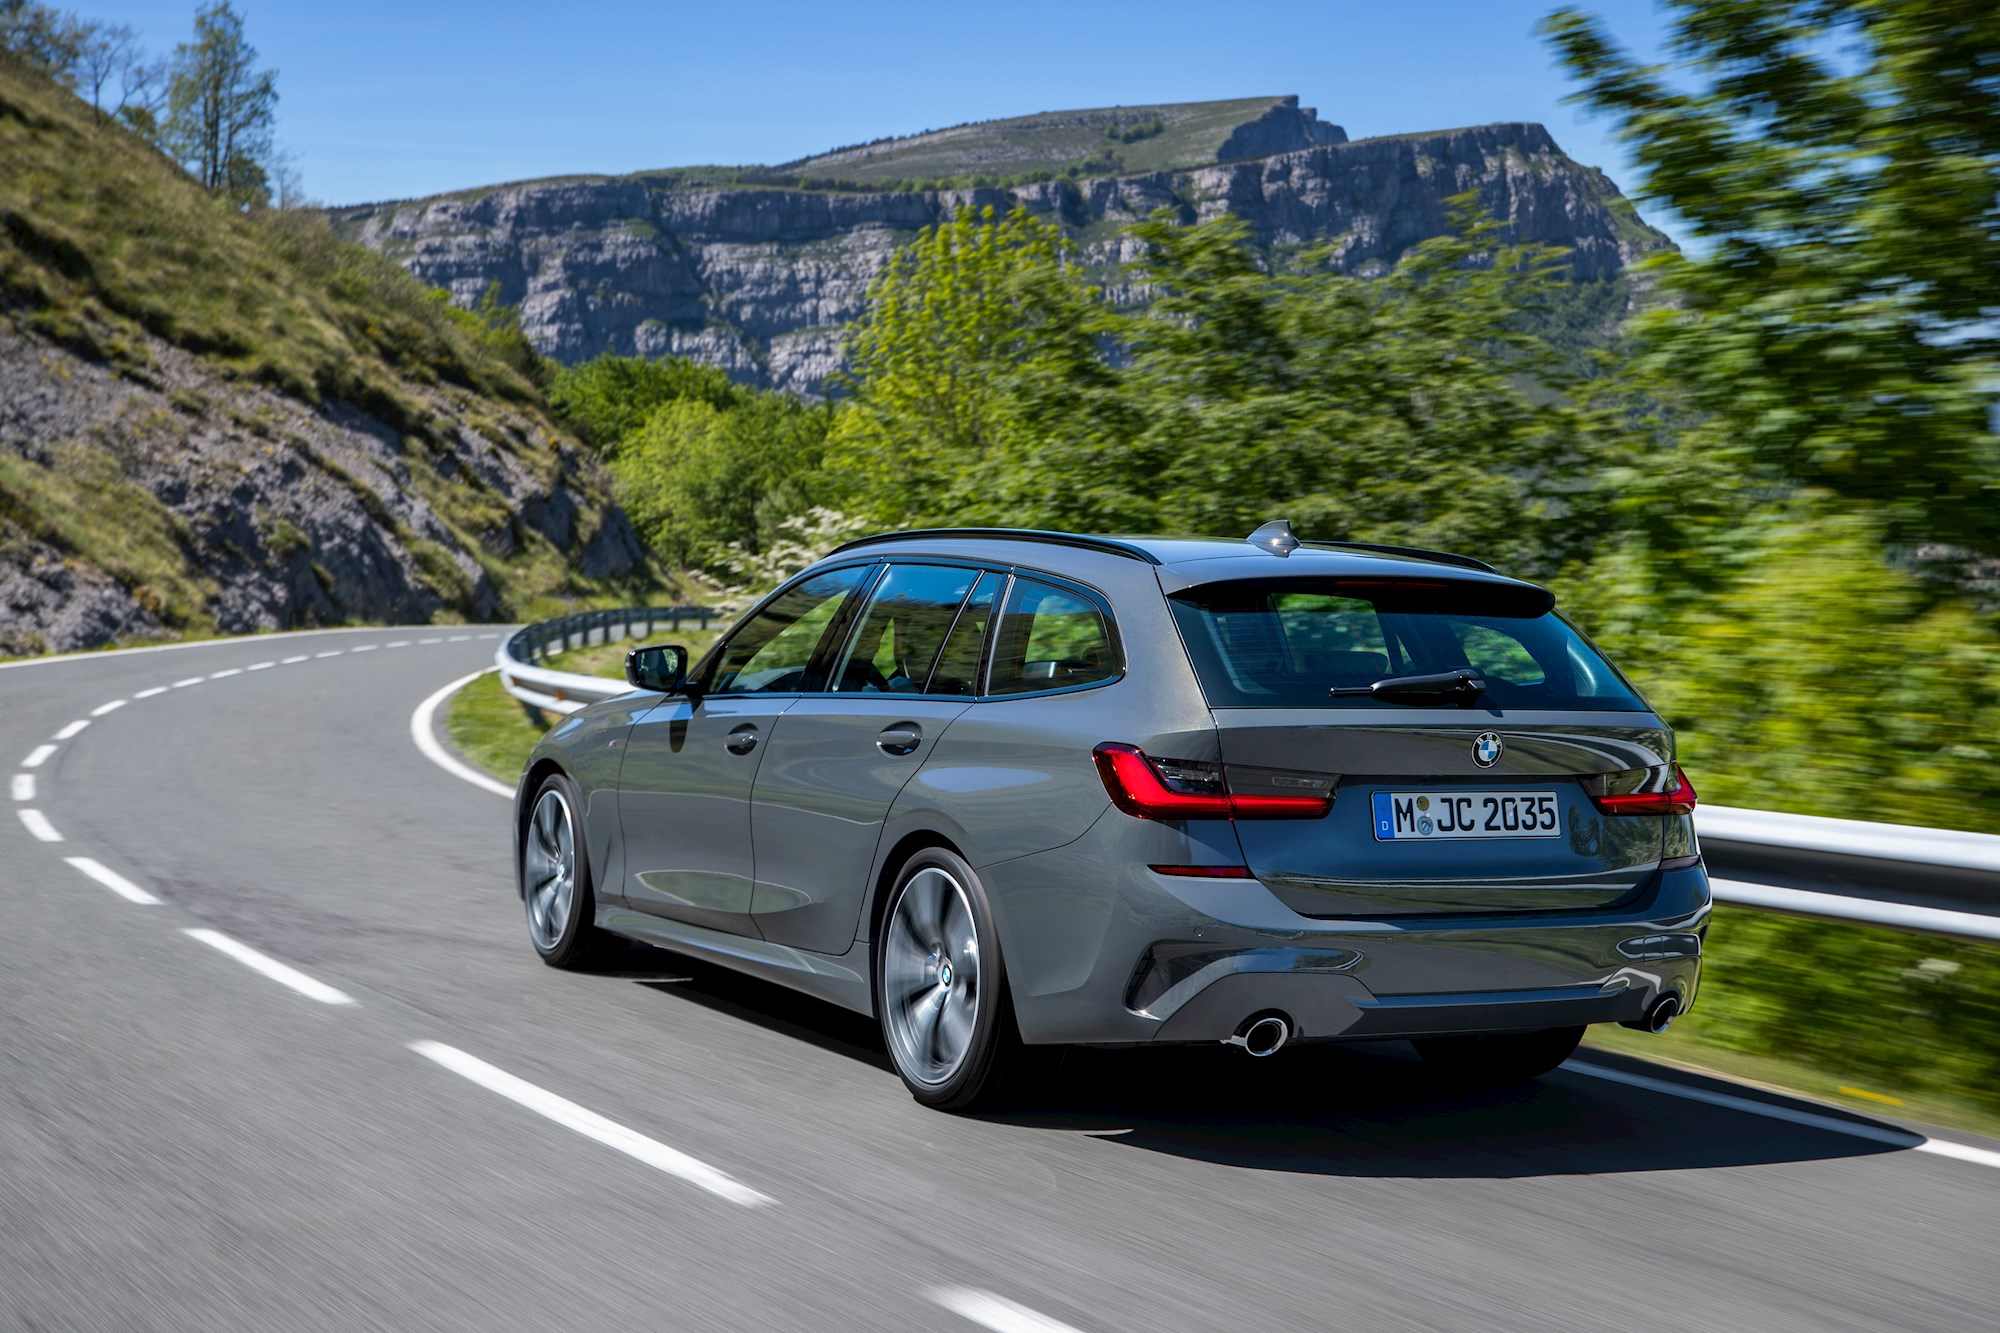 hight resolution of as standard the 3 series touring will get an 8 speed sports automatic transmission bmw s all wheel drive system xdrive plus parking assistant including